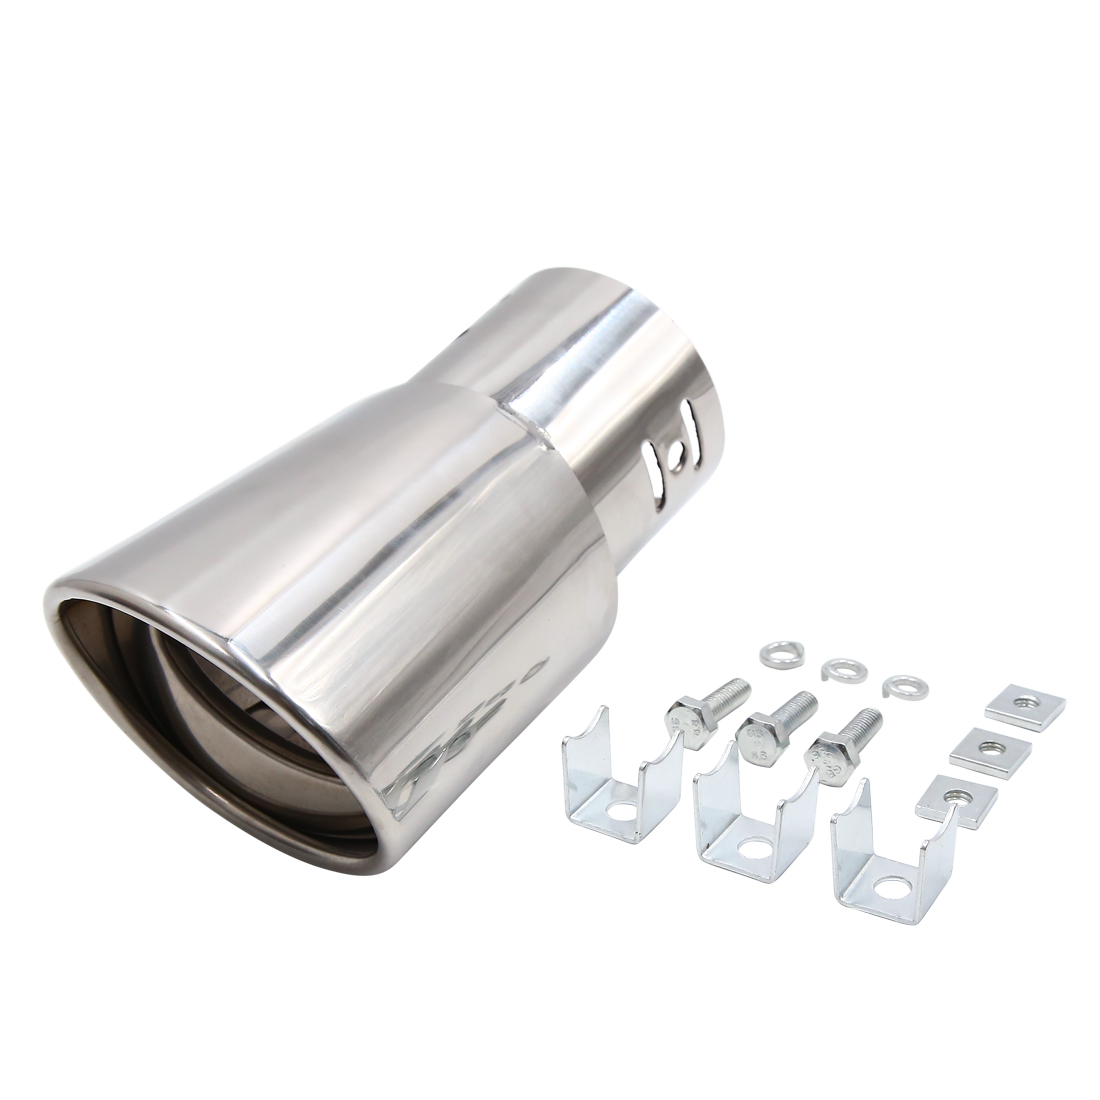 Silver Tone Universal Car Rear Stainless Steel Exhaust Muffler Tail Pipe